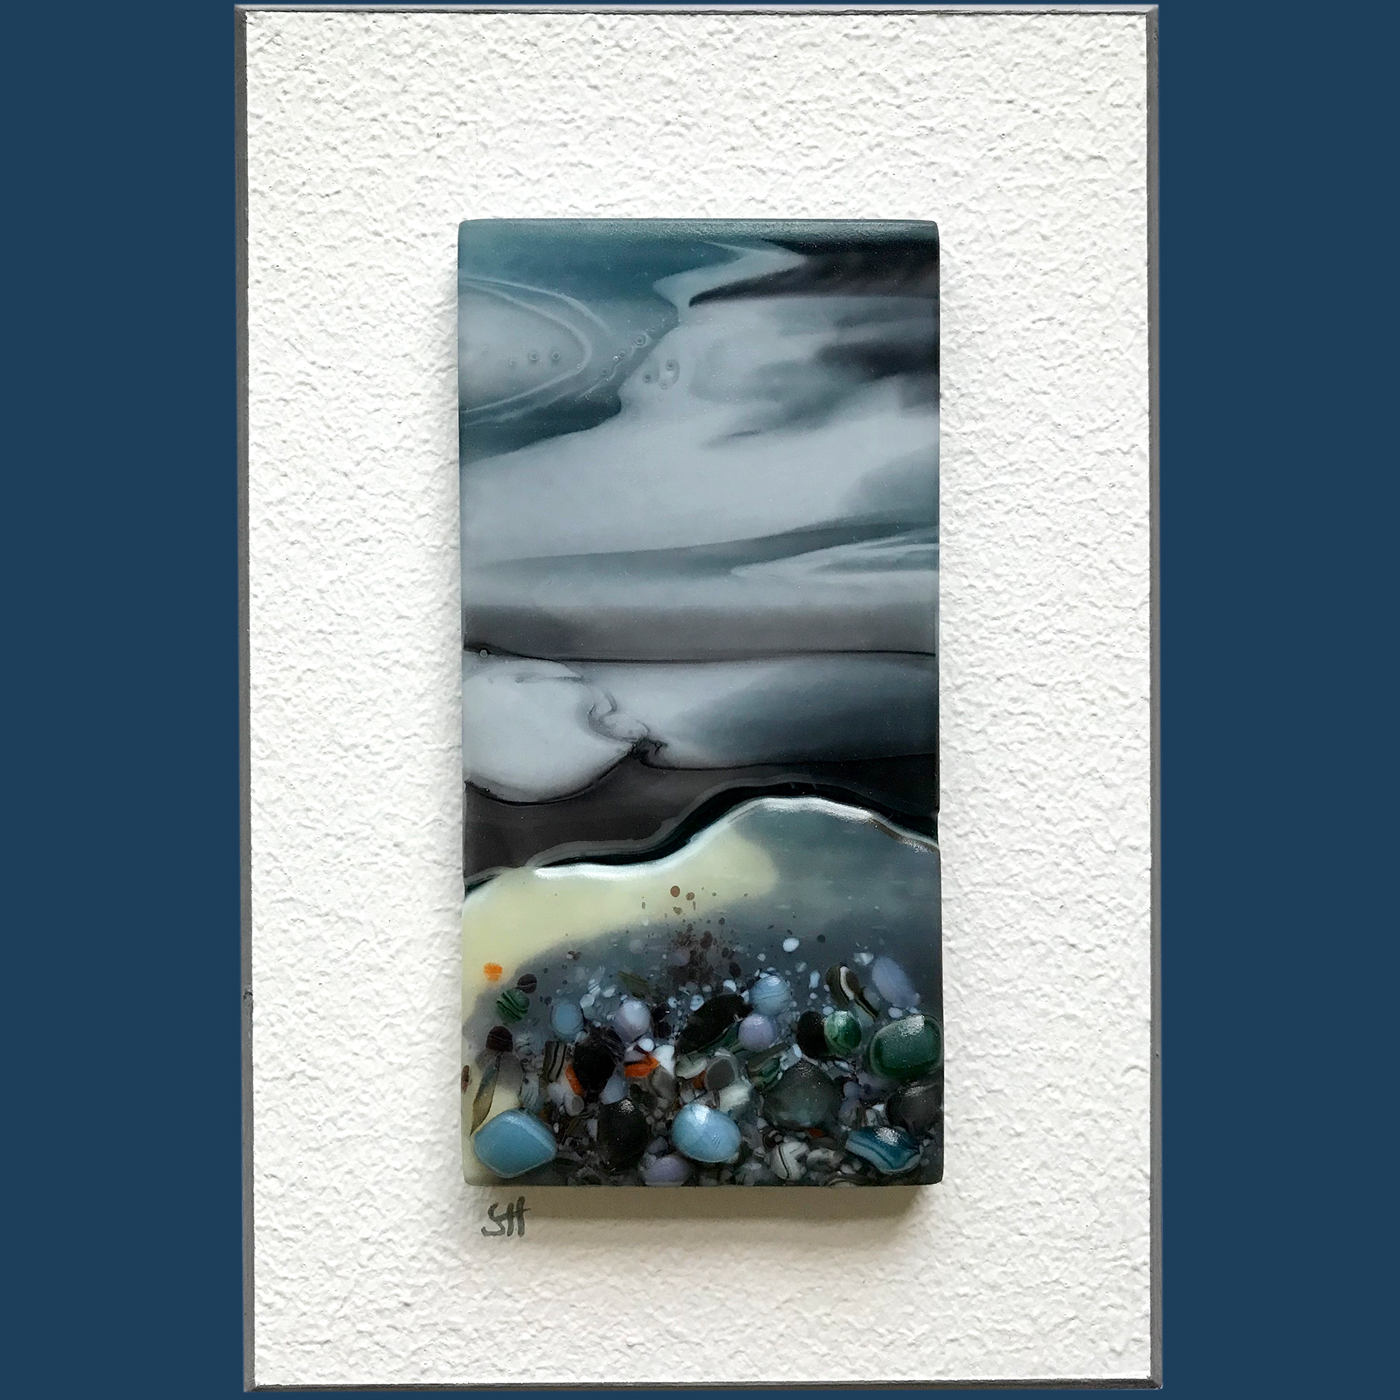 Seascapes fused glass wall art, coastal landscapes, dark sky clouds art, vanilla/grey/green/blues and glass frits in foreground.